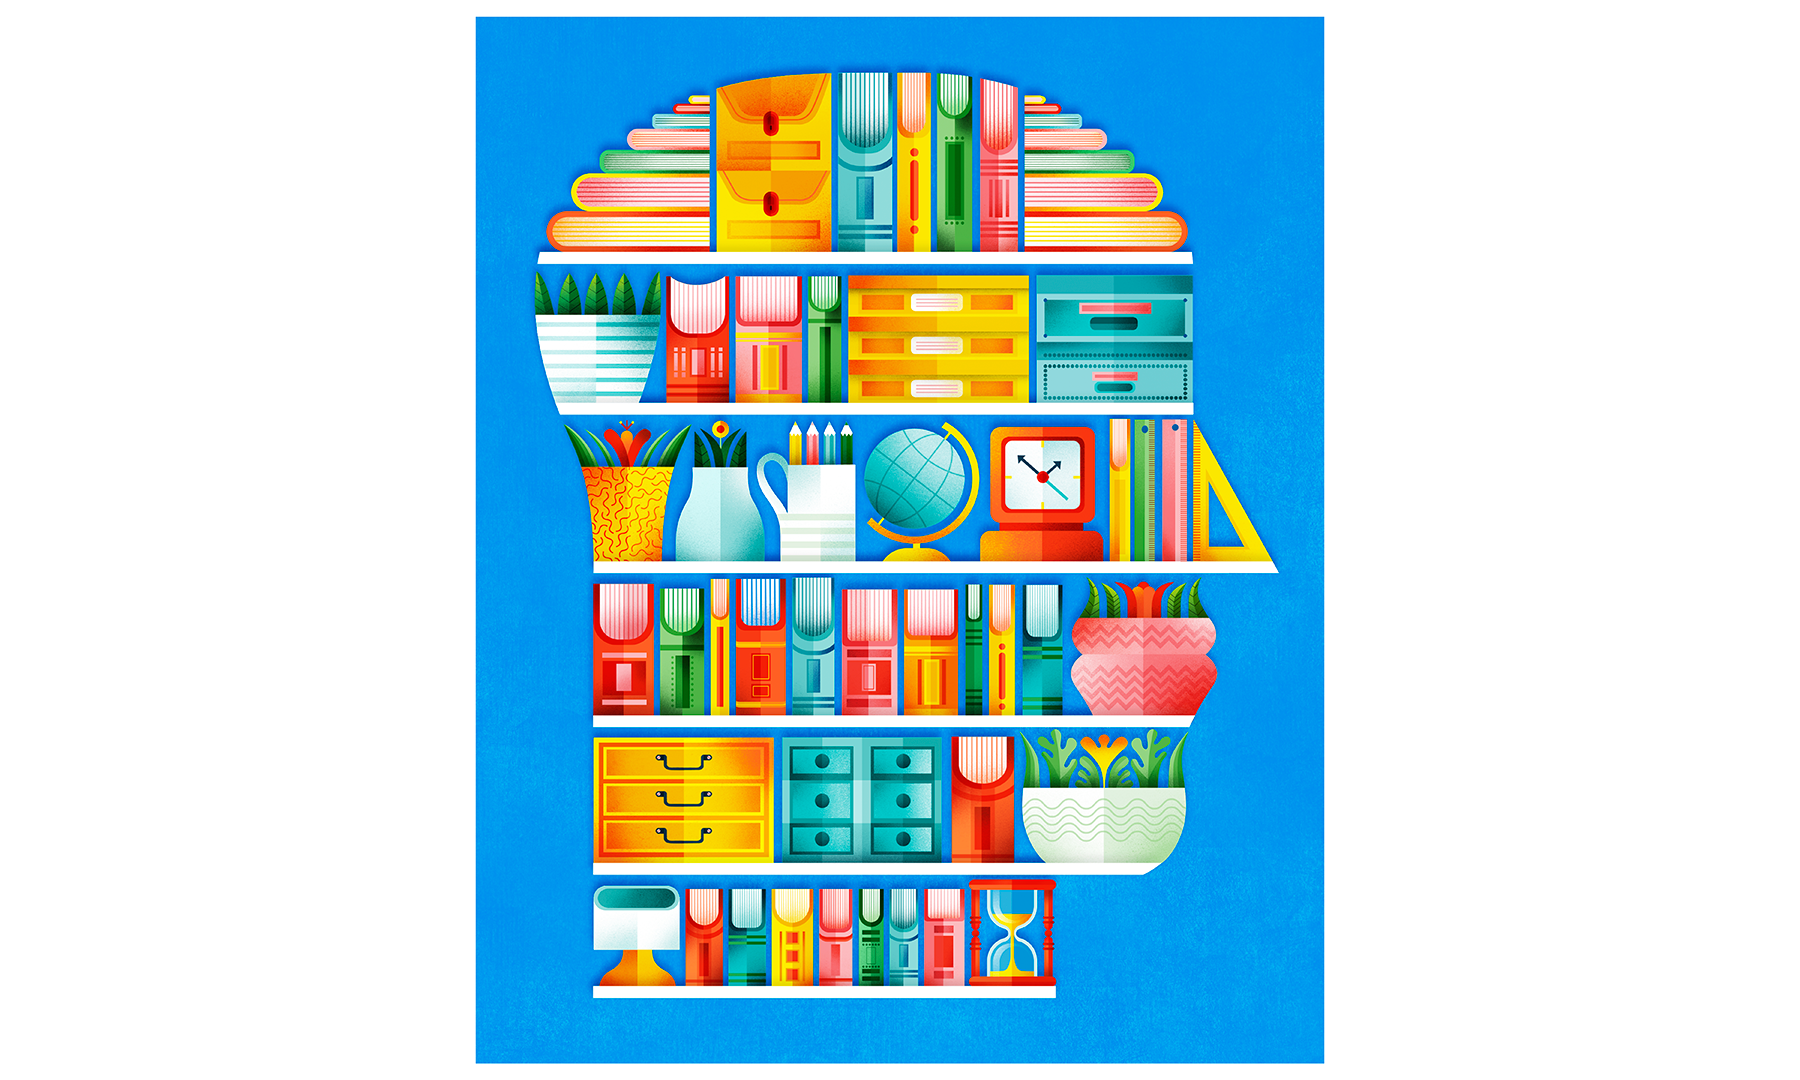 Illustration: person's head as organized shelves